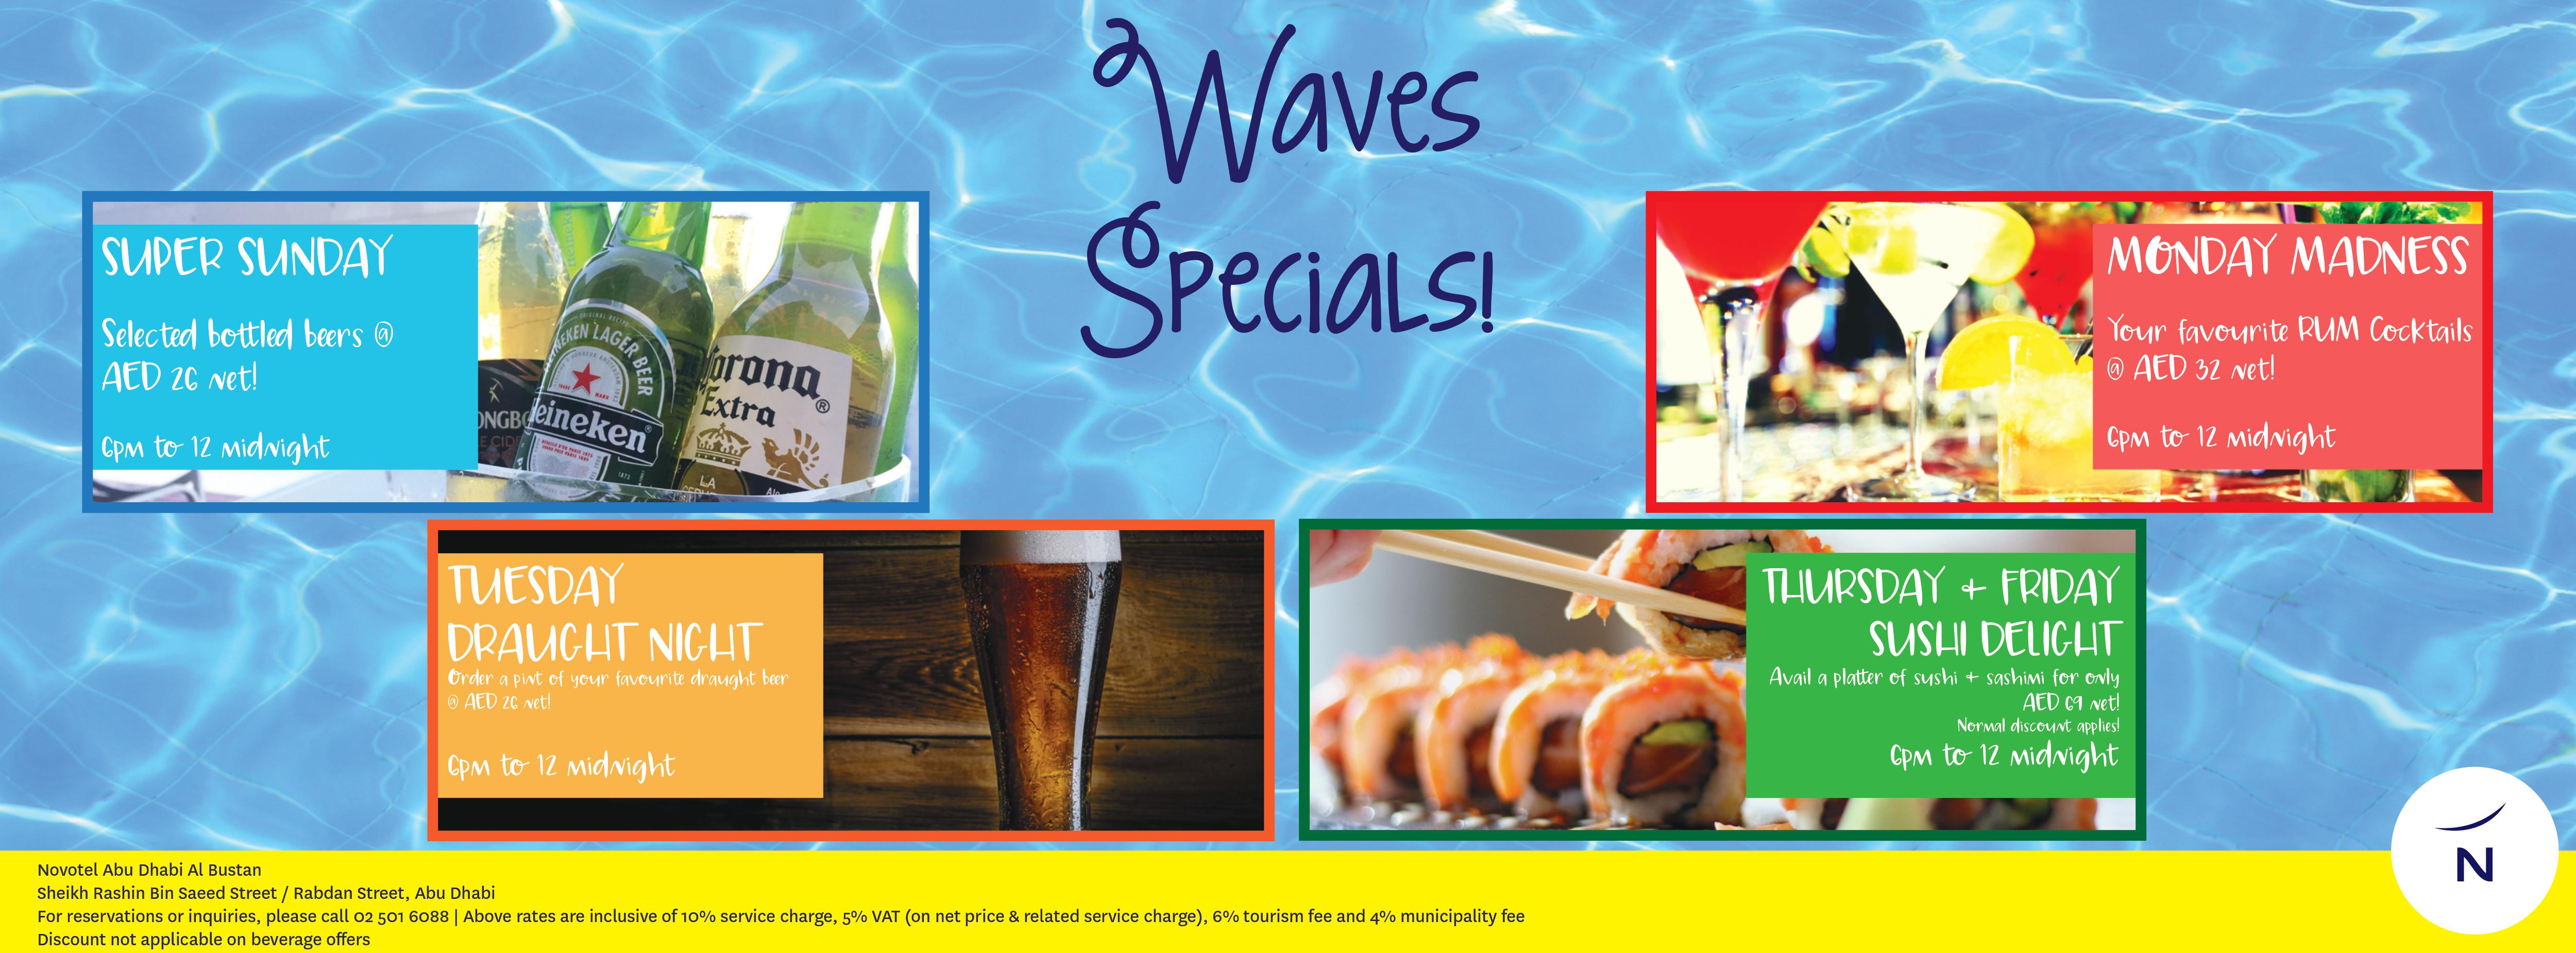 Waves Special